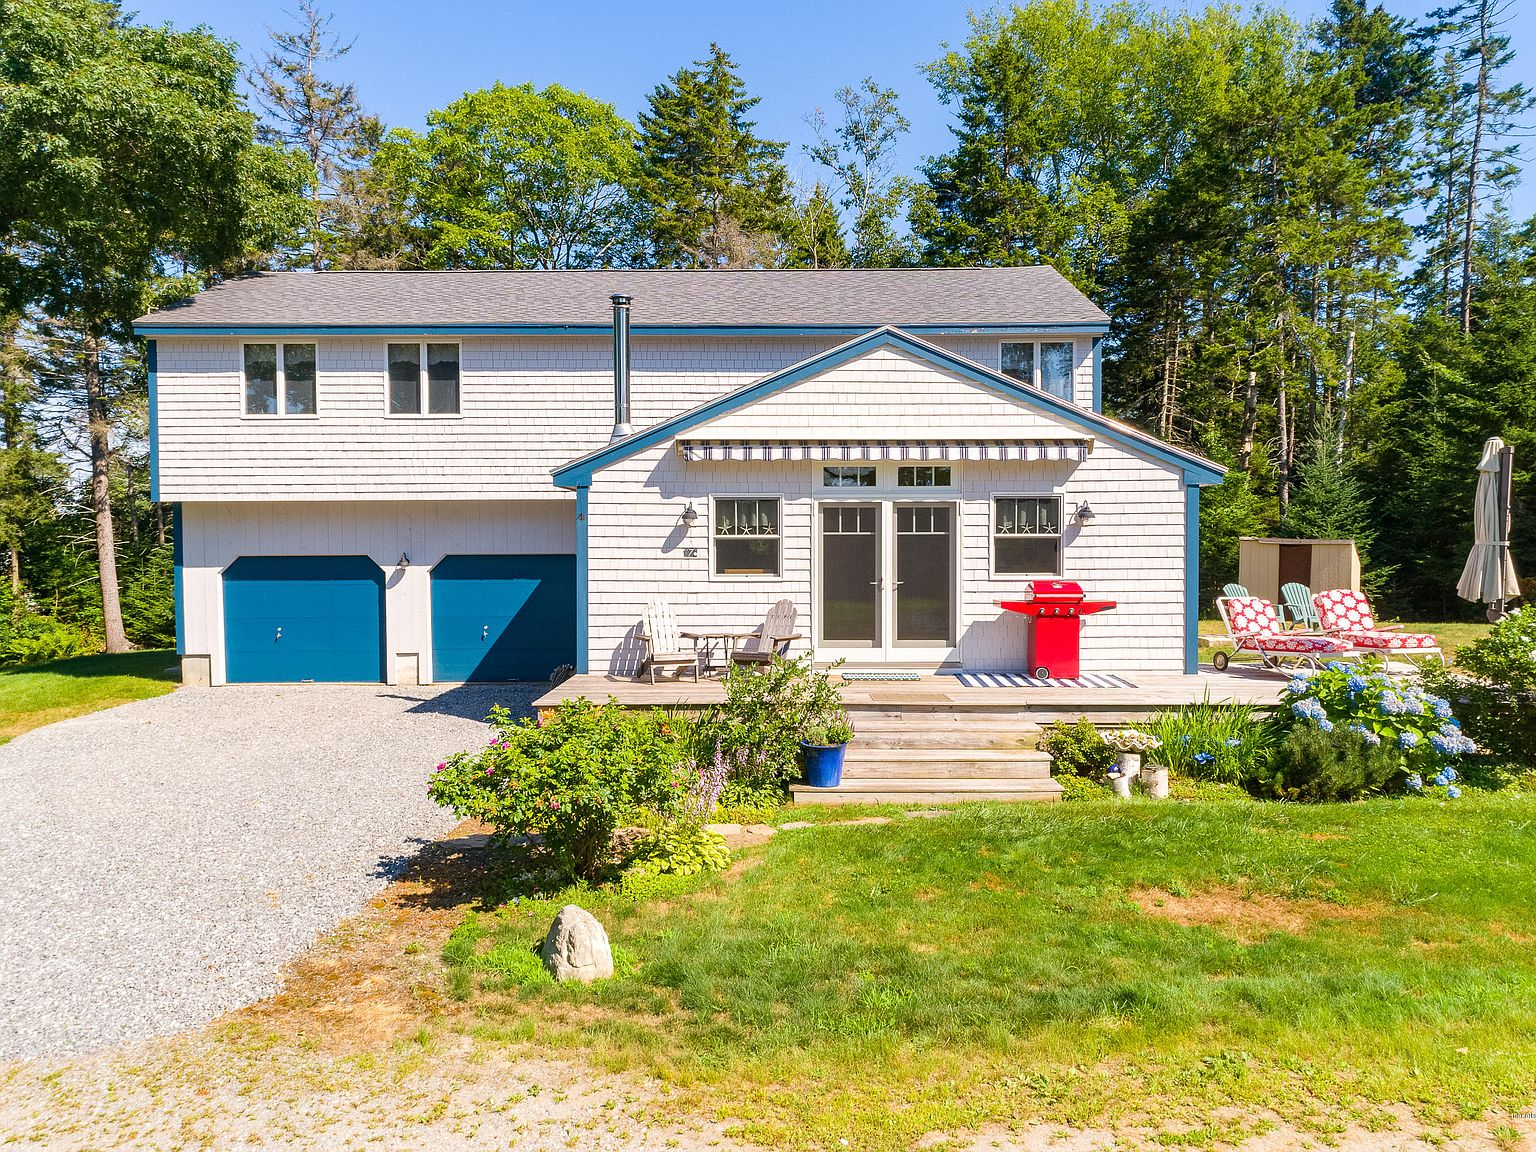 7 Matthews Way Harpswell Me 04079 Zillow